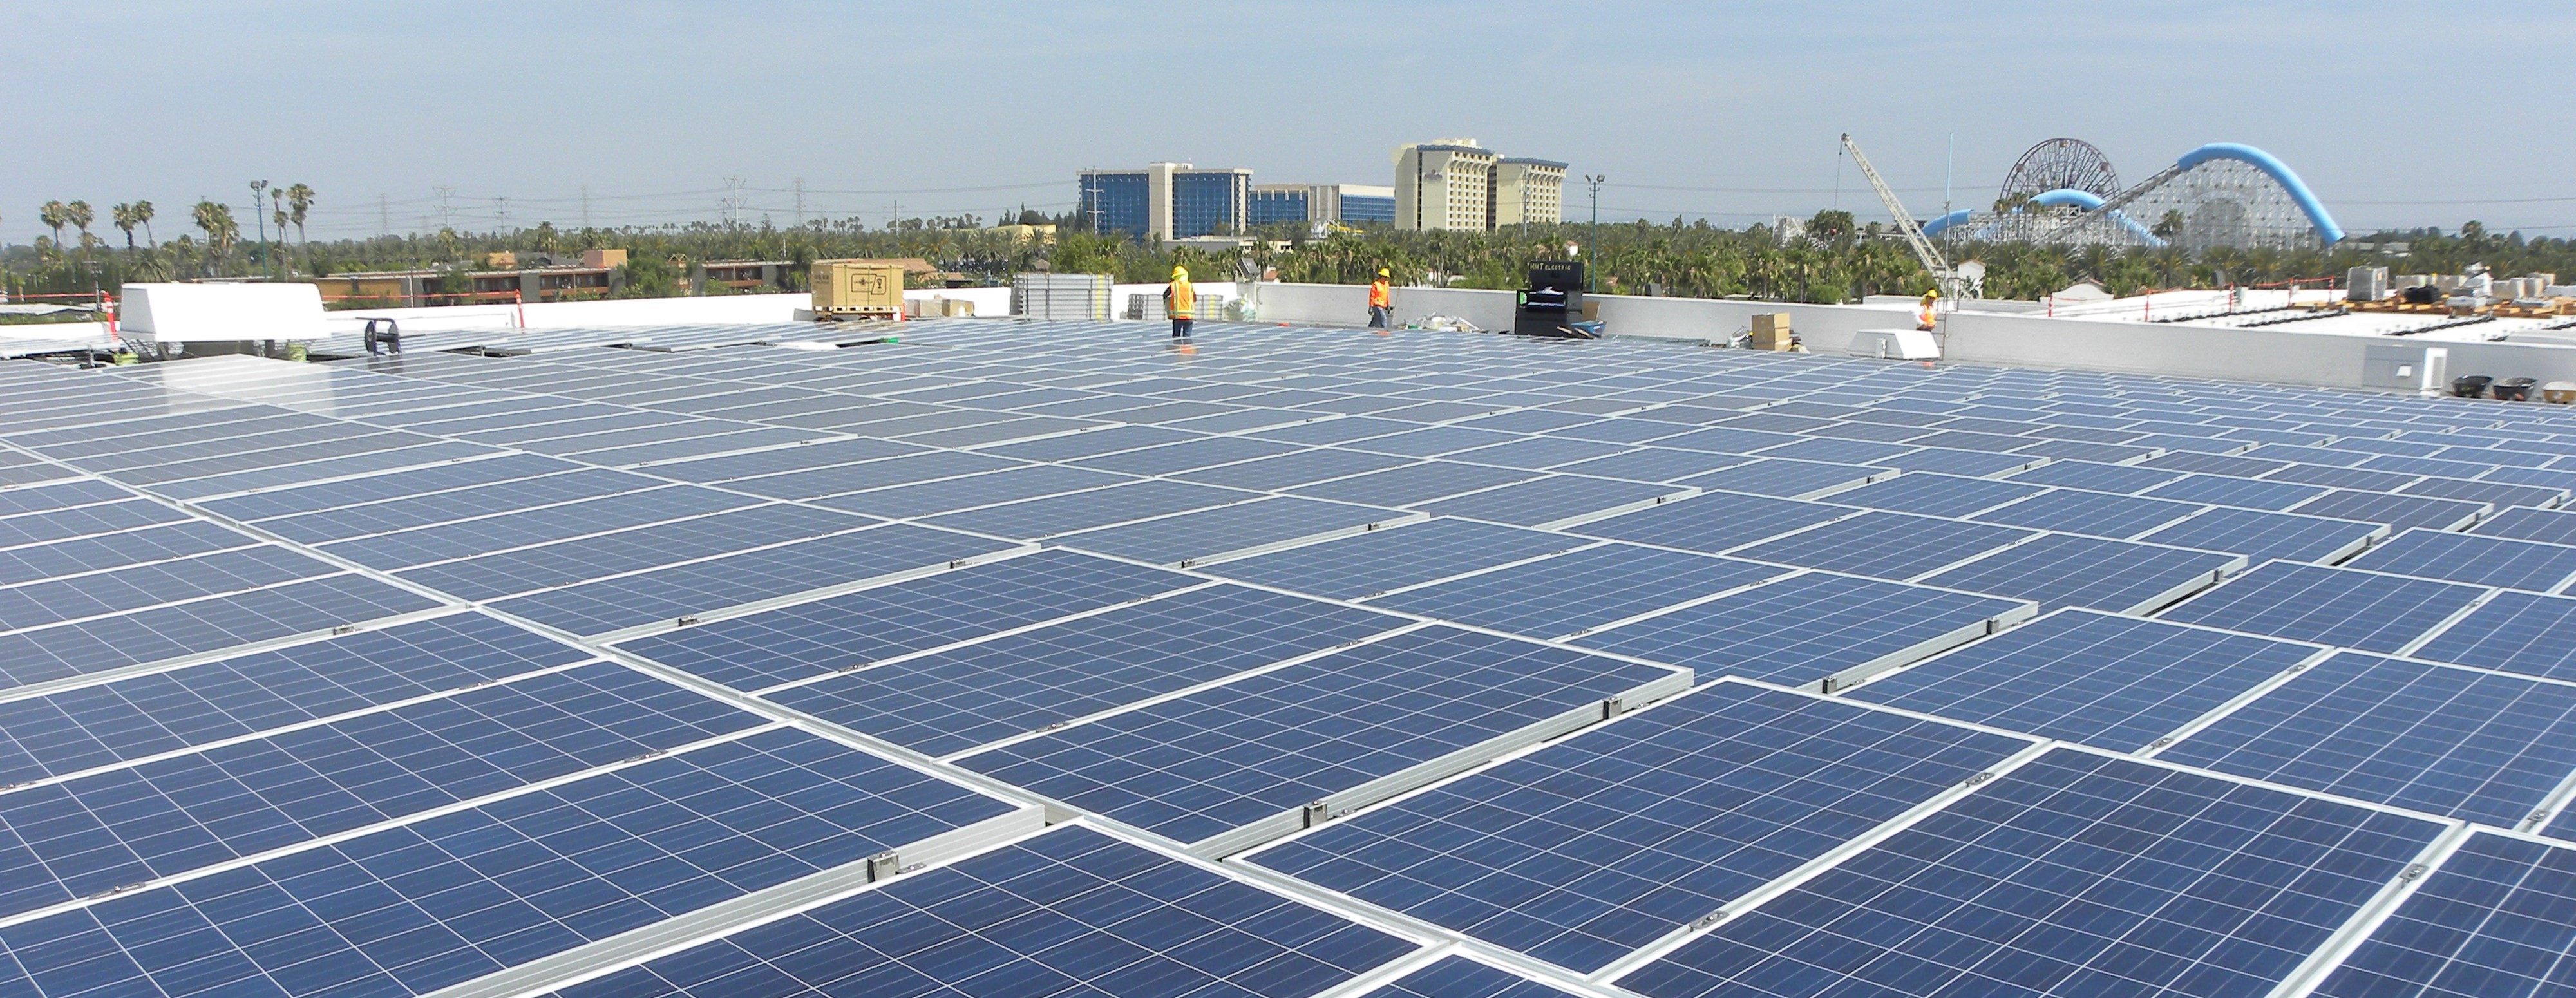 Ibewoc Registered Electrical Worker And Trade Solar Energy Efficiency Projects